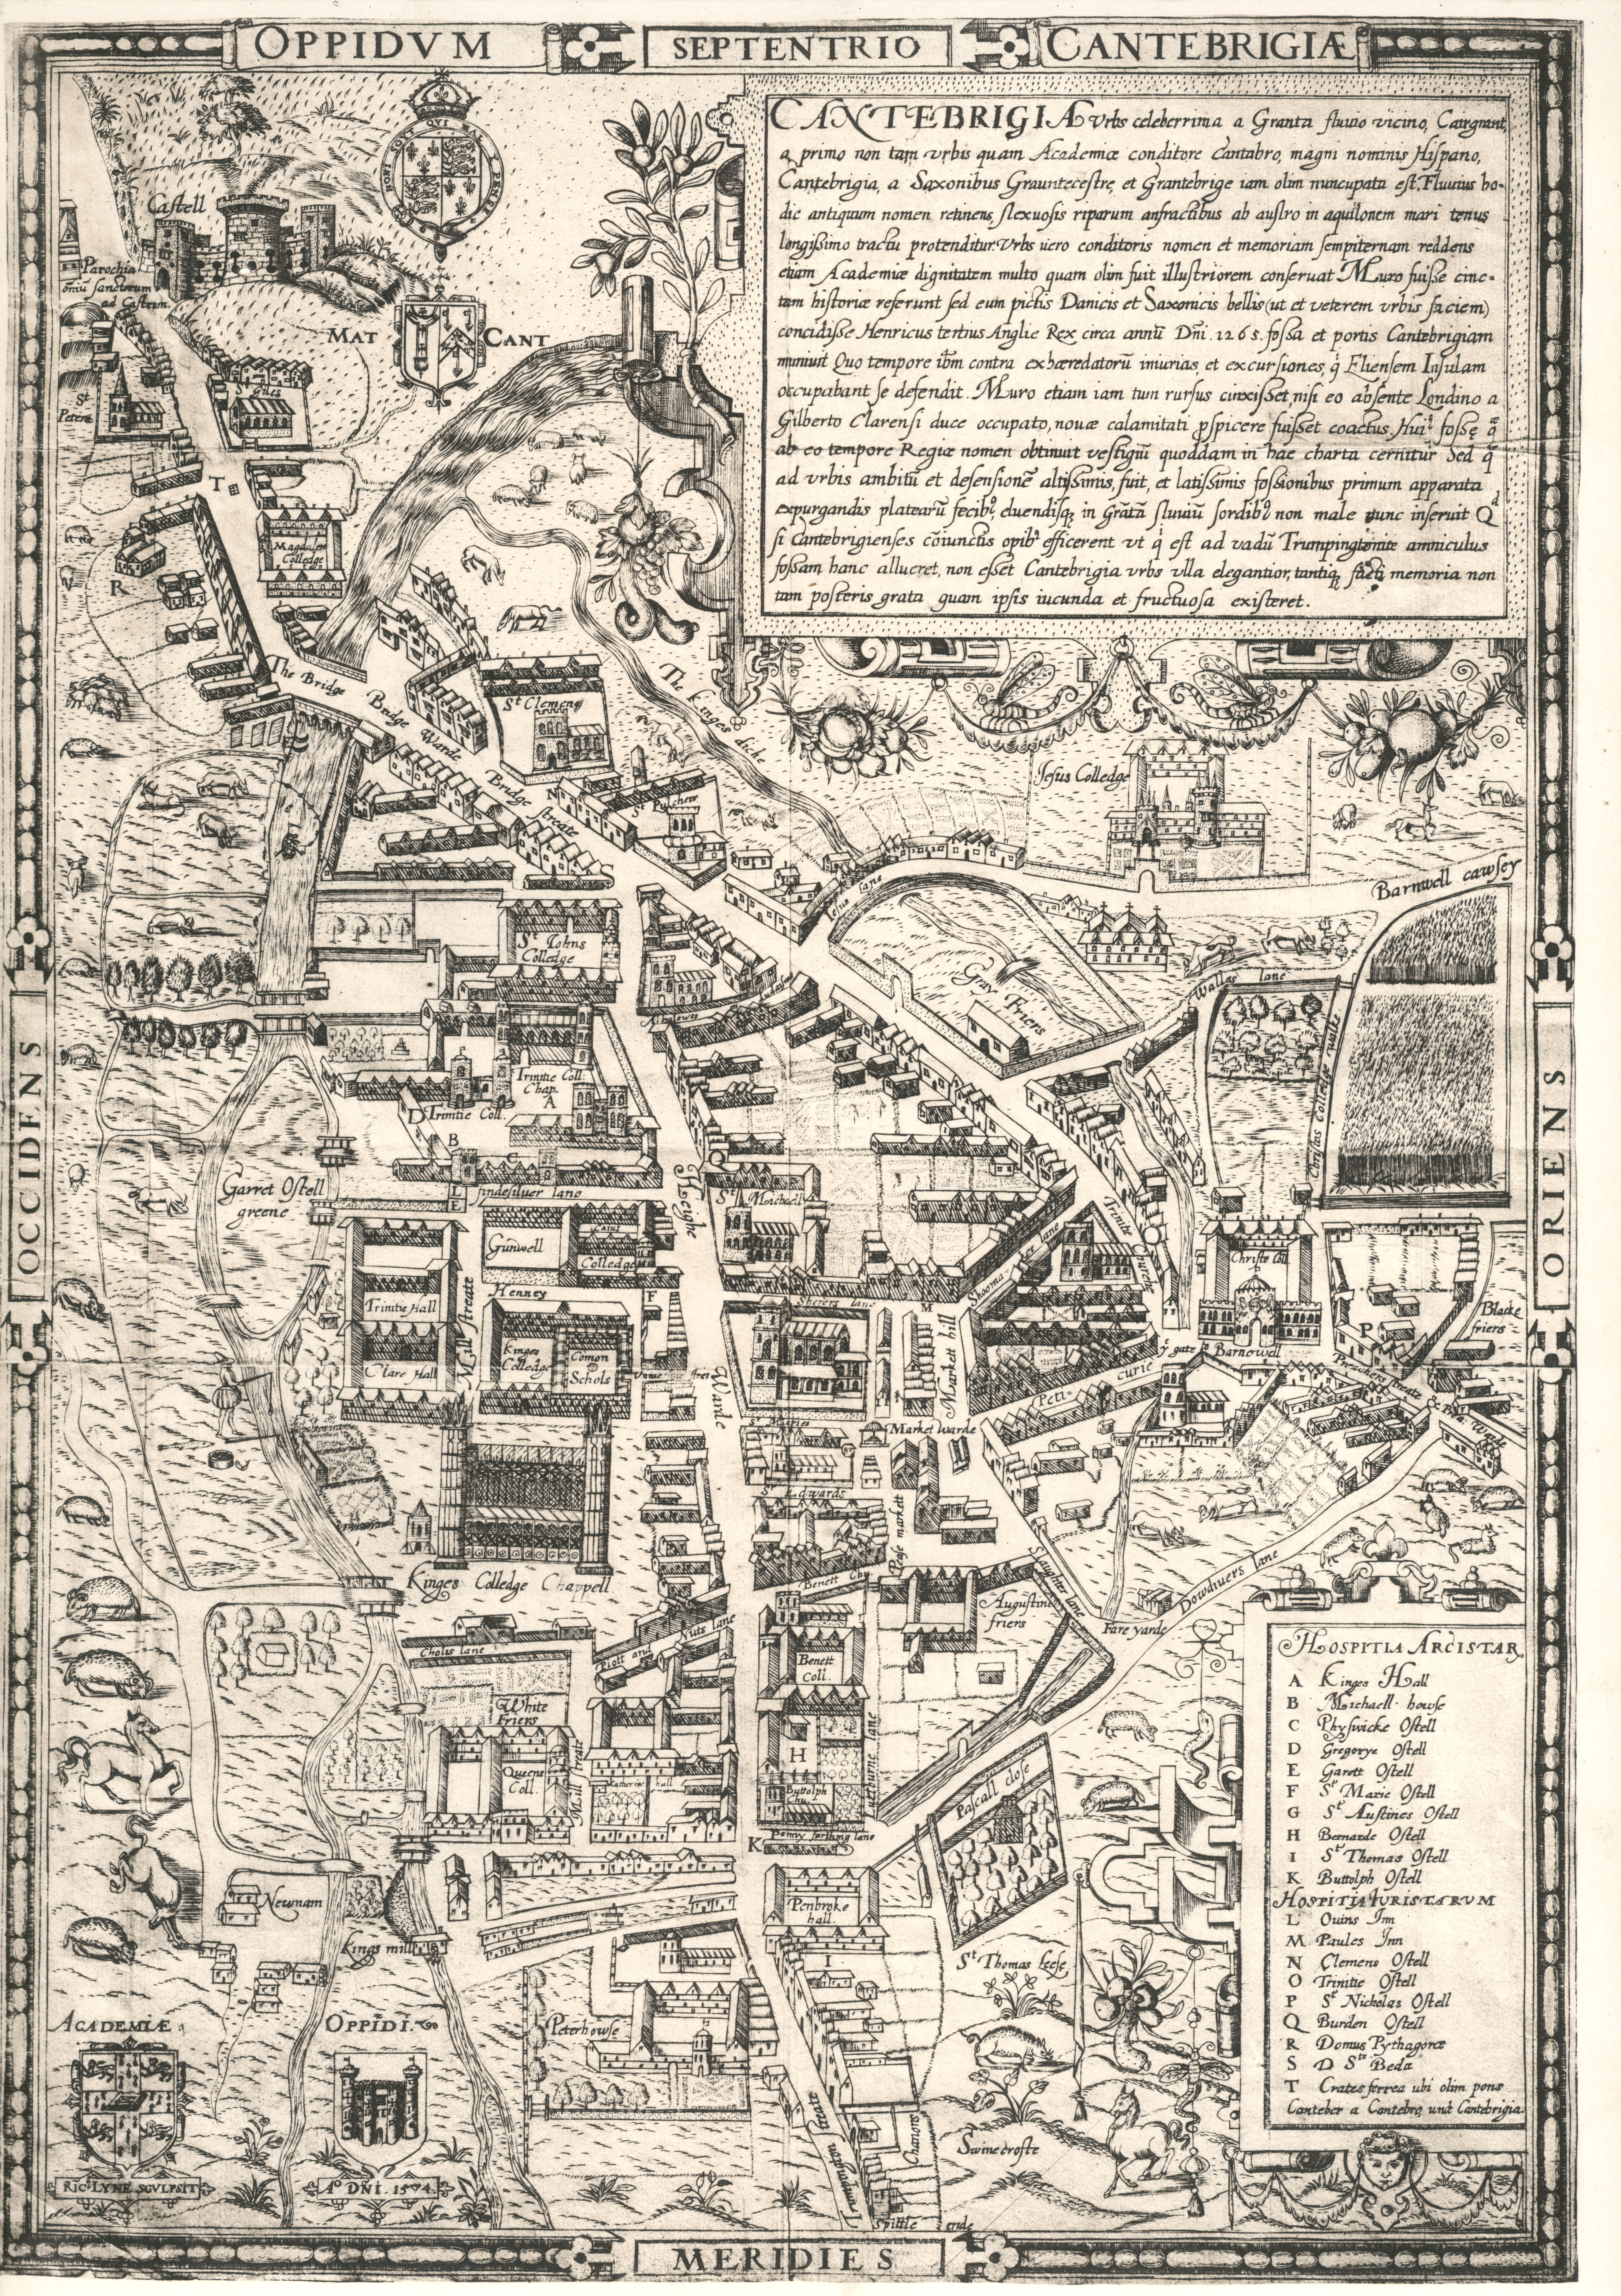 Plan of Cambridge, by Richard Lyne, 1574, showing the current Chapel, the Old Court and other early College buildings. [Clark and Gray, plate 1]